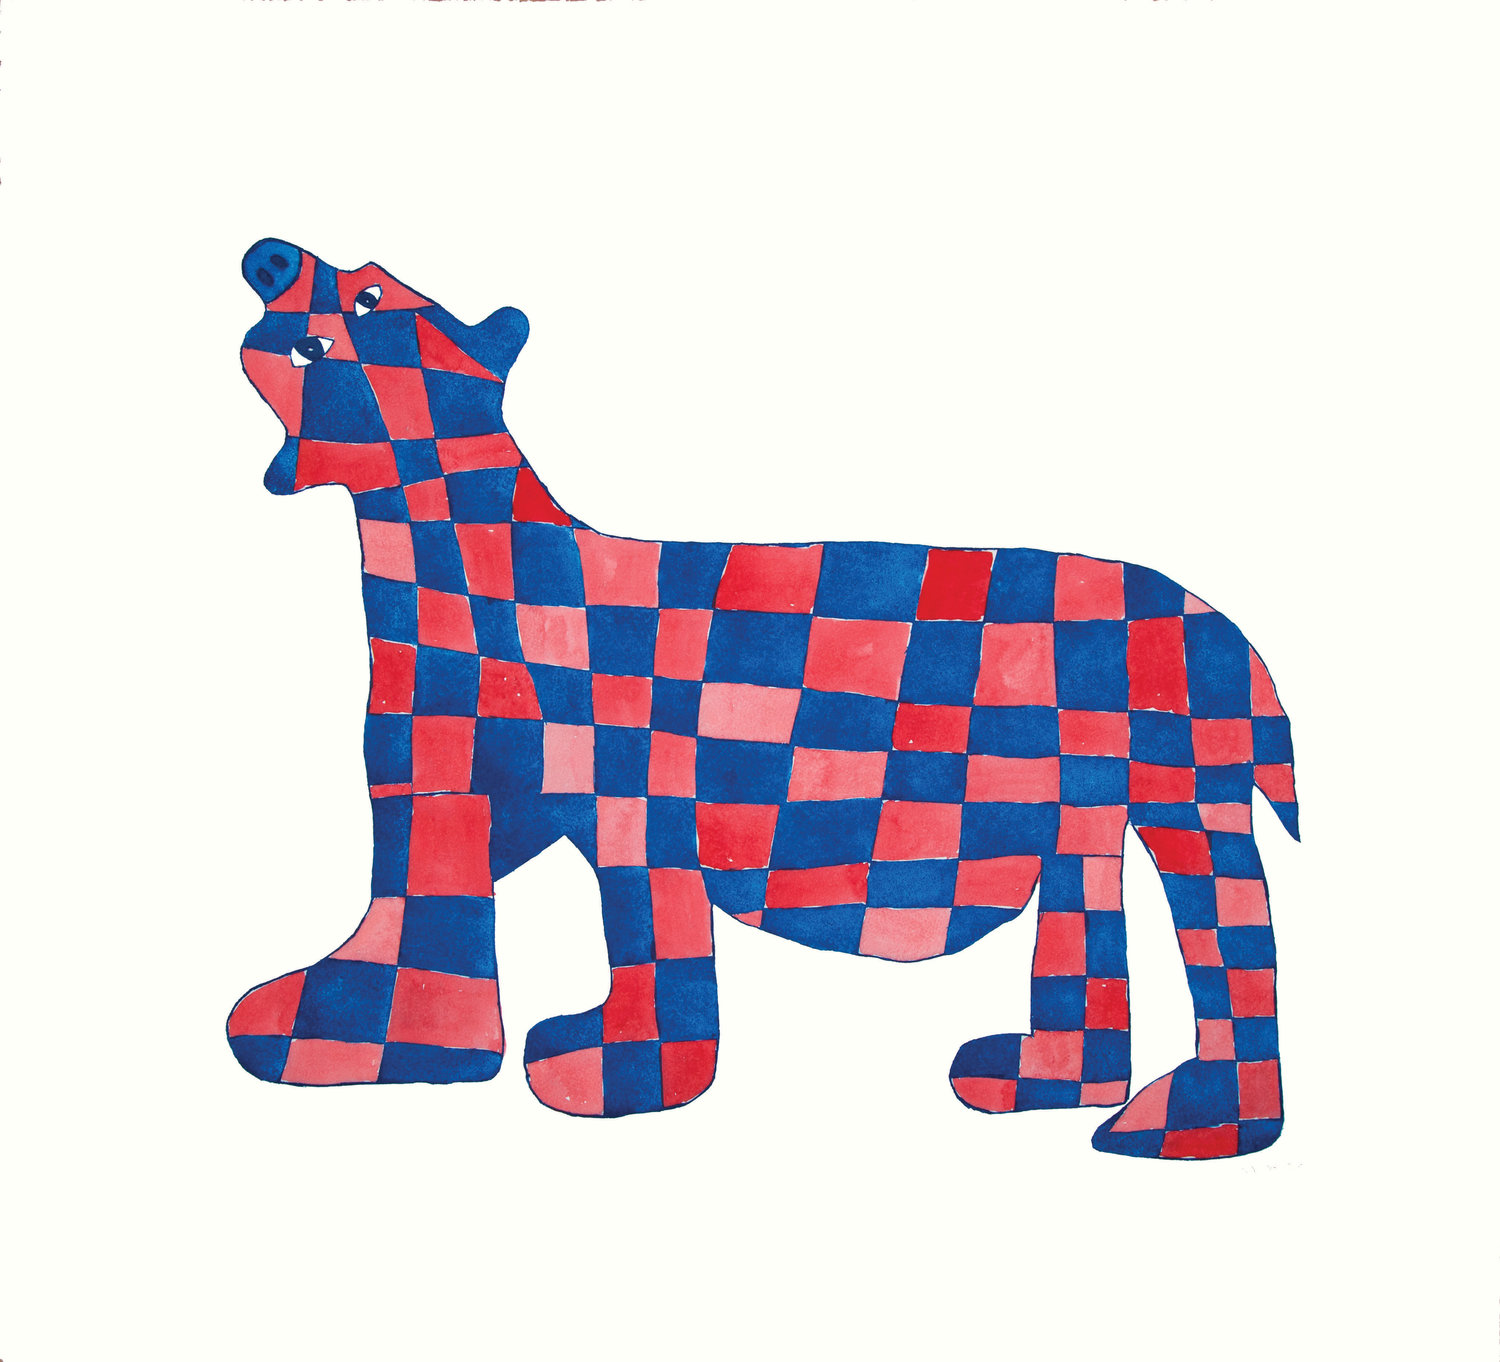 16. CHECKERED BEAR